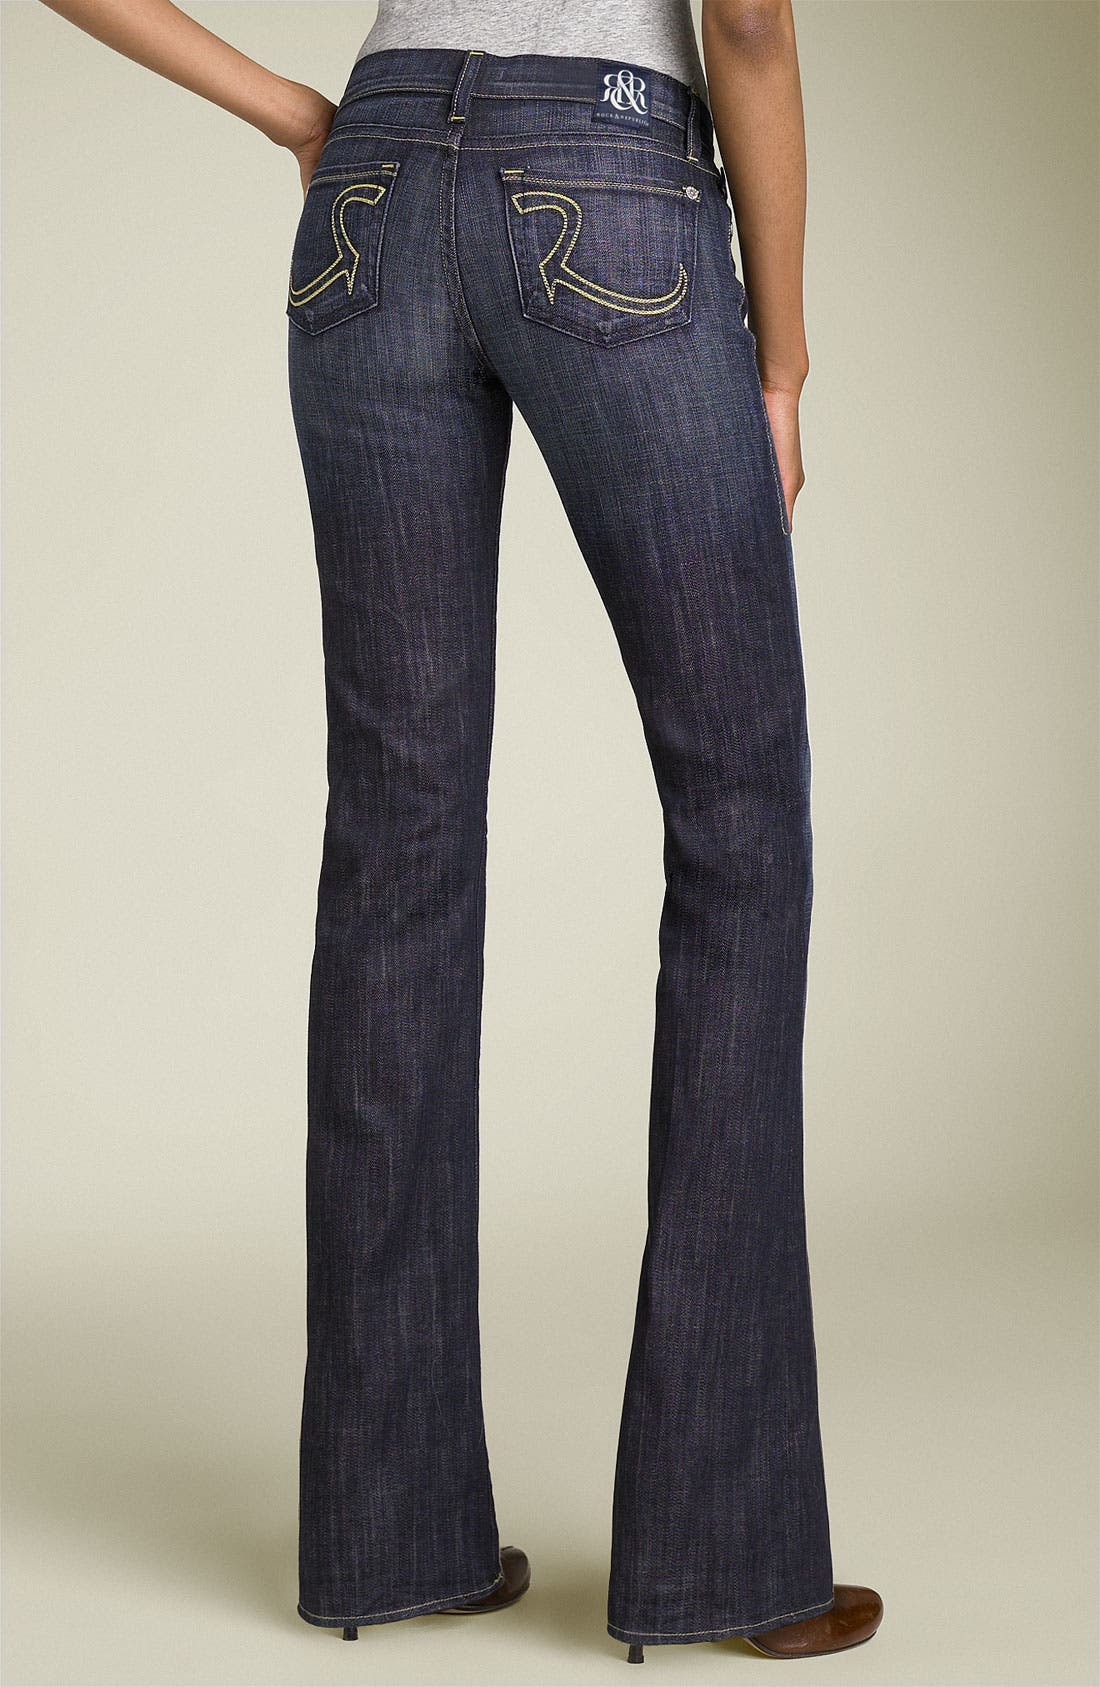 ROCK & REPUBLIC,                             'Kasandra' Bootcut Stretch Jeans,                             Main thumbnail 1, color,                             400